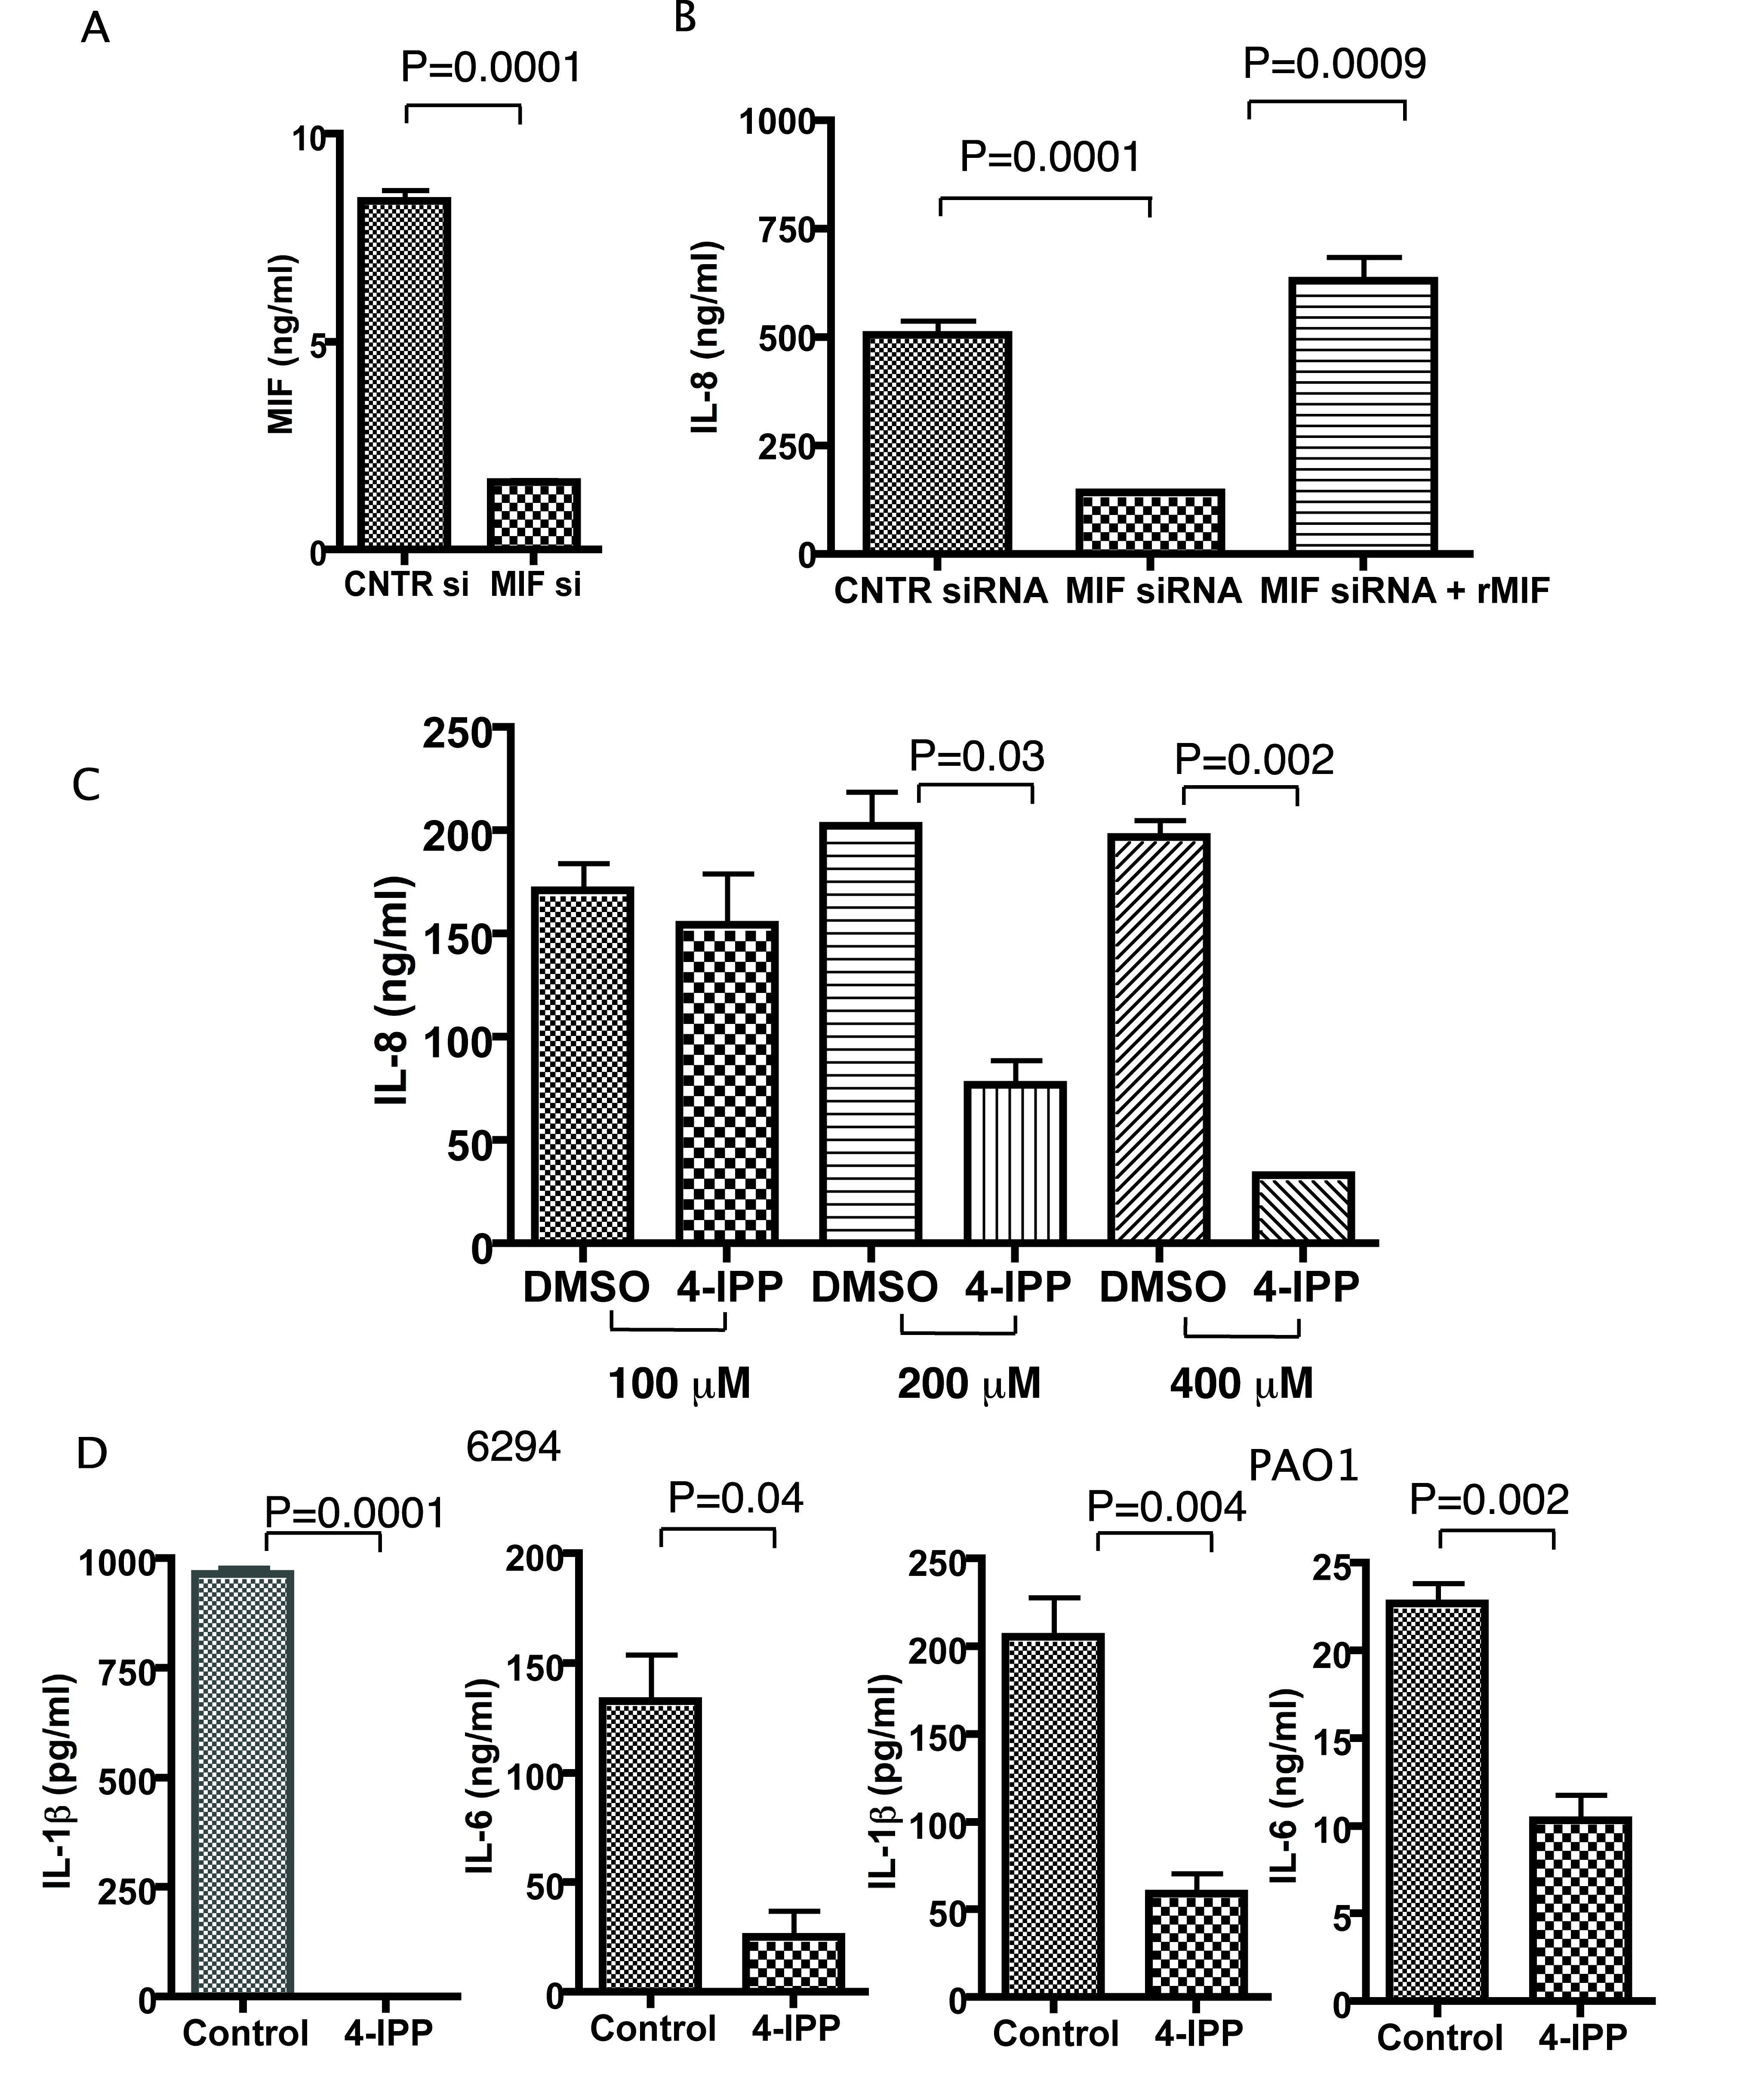 Corneal epithelial cells produce less IL-8, IL-6, IL-1β after infection with <i>P. aeruginosa</i> strain 6294 when MIF levels are reduced or MIF tautomerase activity inhibited.